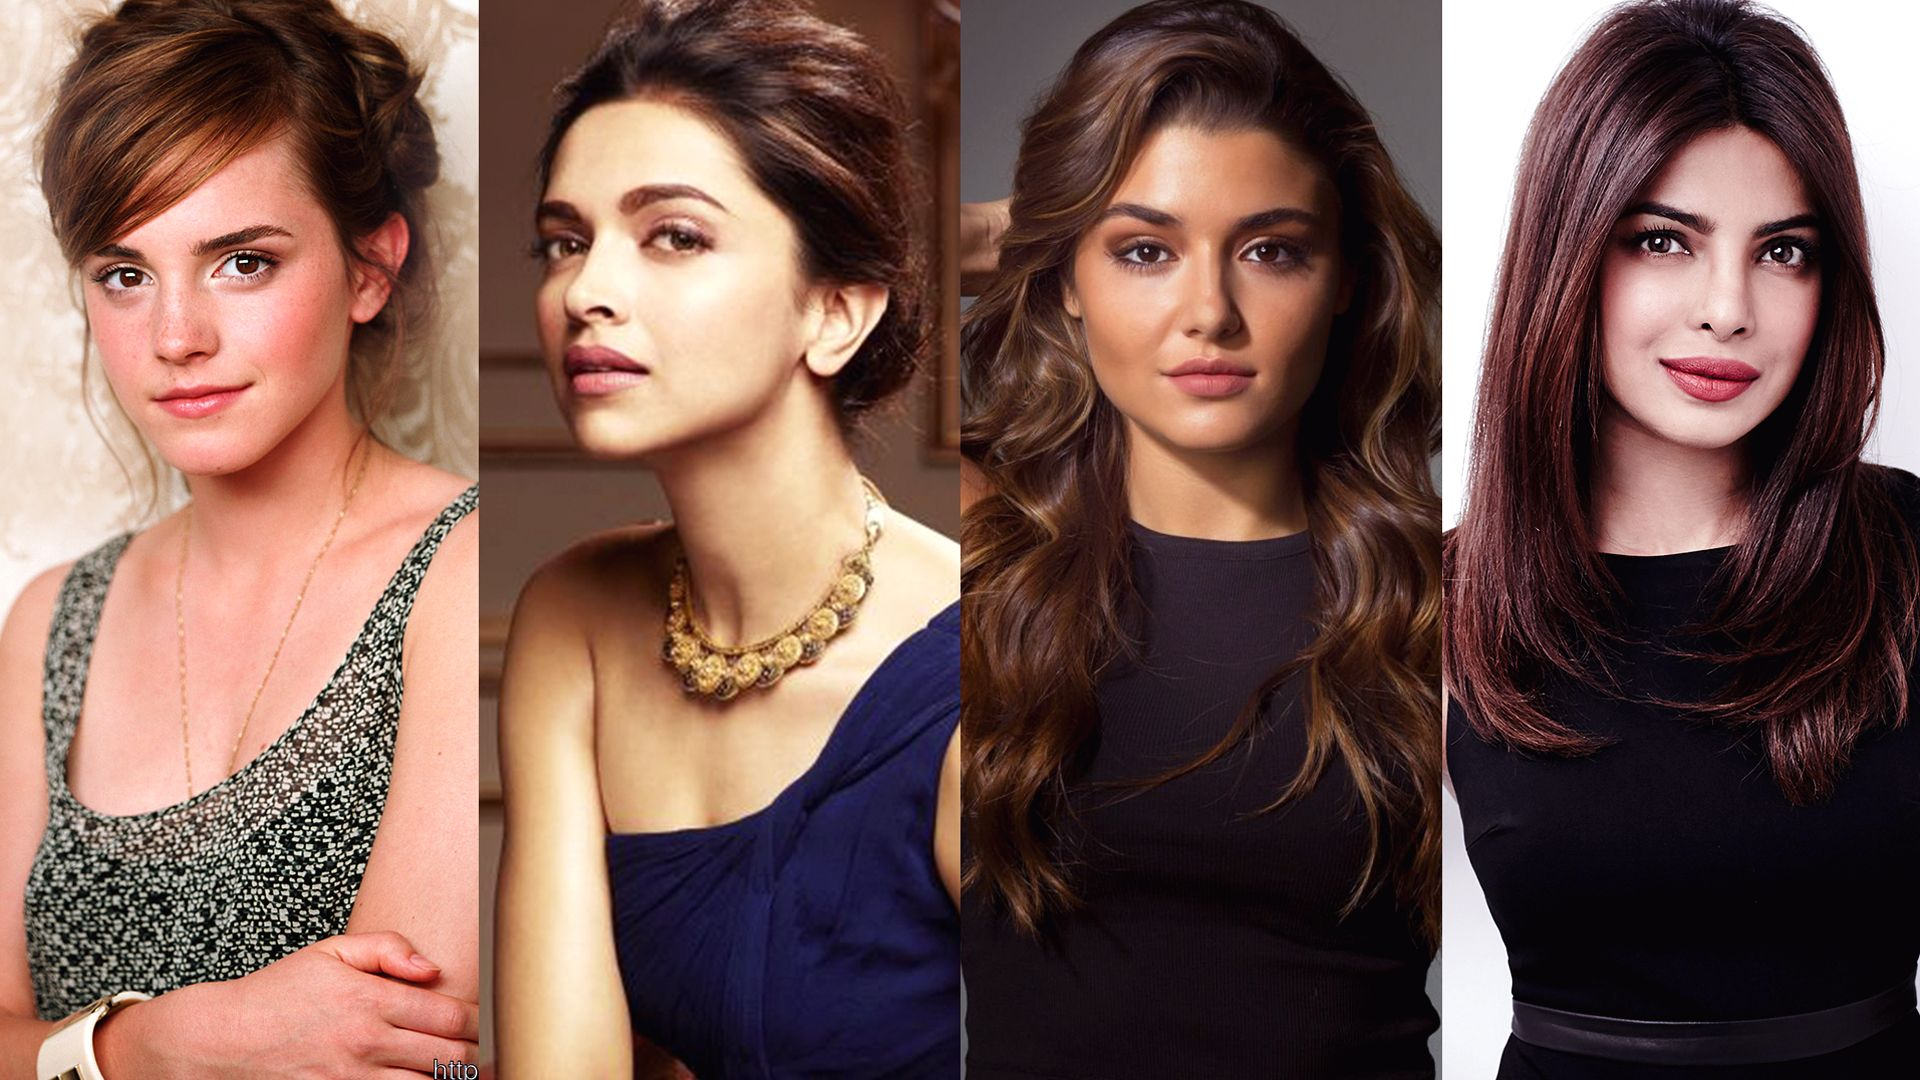 Top 10 Most Beautiful Faces Women In The World Worlds Beautiful Women Most Beautiful Faces Famous Girls